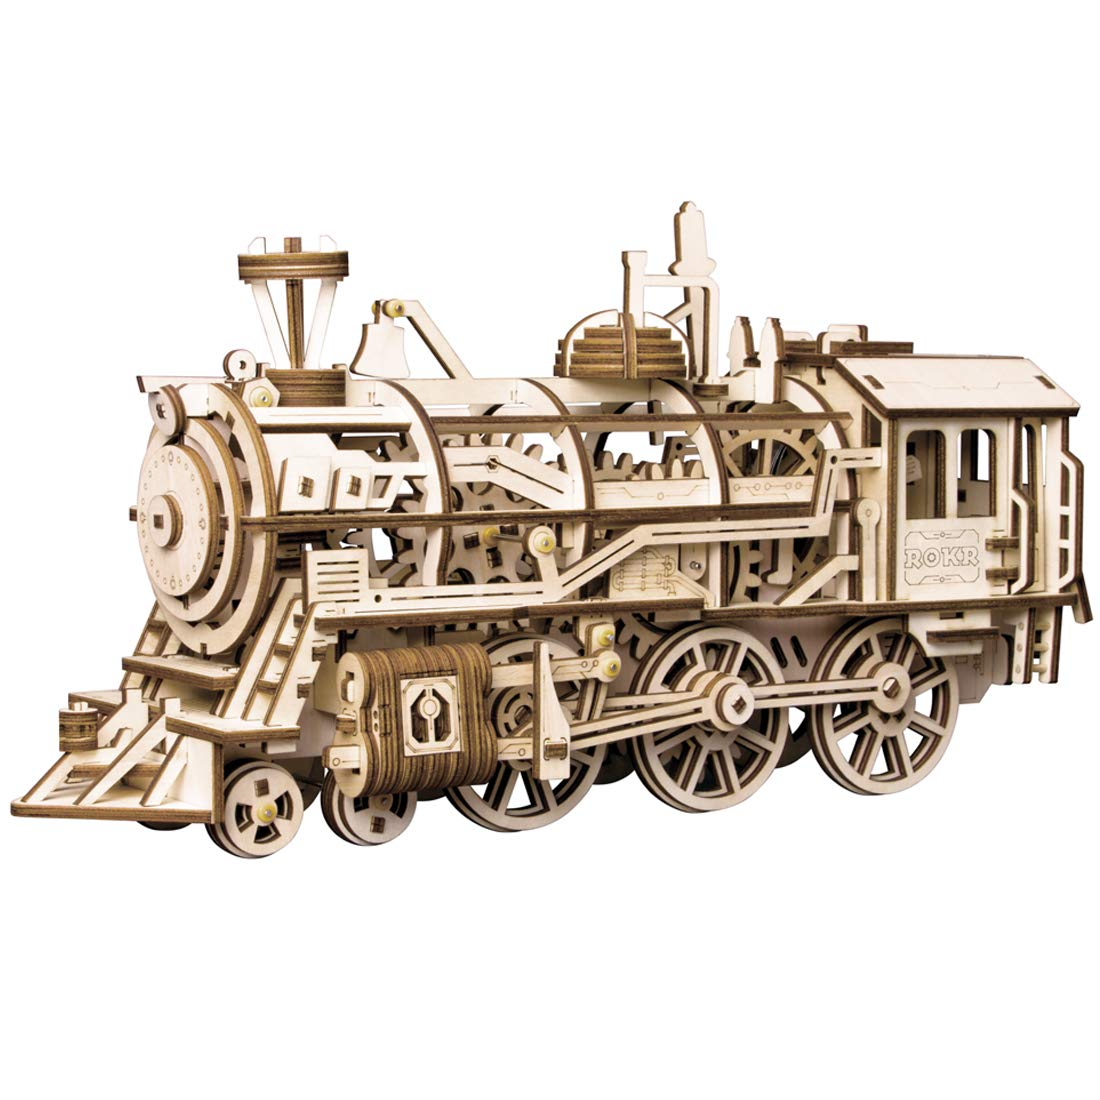 ROKR 3D Wooden Puzzle-Self Propelled Mechanical Model-DIY Building Kits-Brain Teaser Games-Best Gift for Boyfriend or Girlfriend on Birthday/Anniversary/Valentine's Day/Christmas(Locomotive) by ROKR